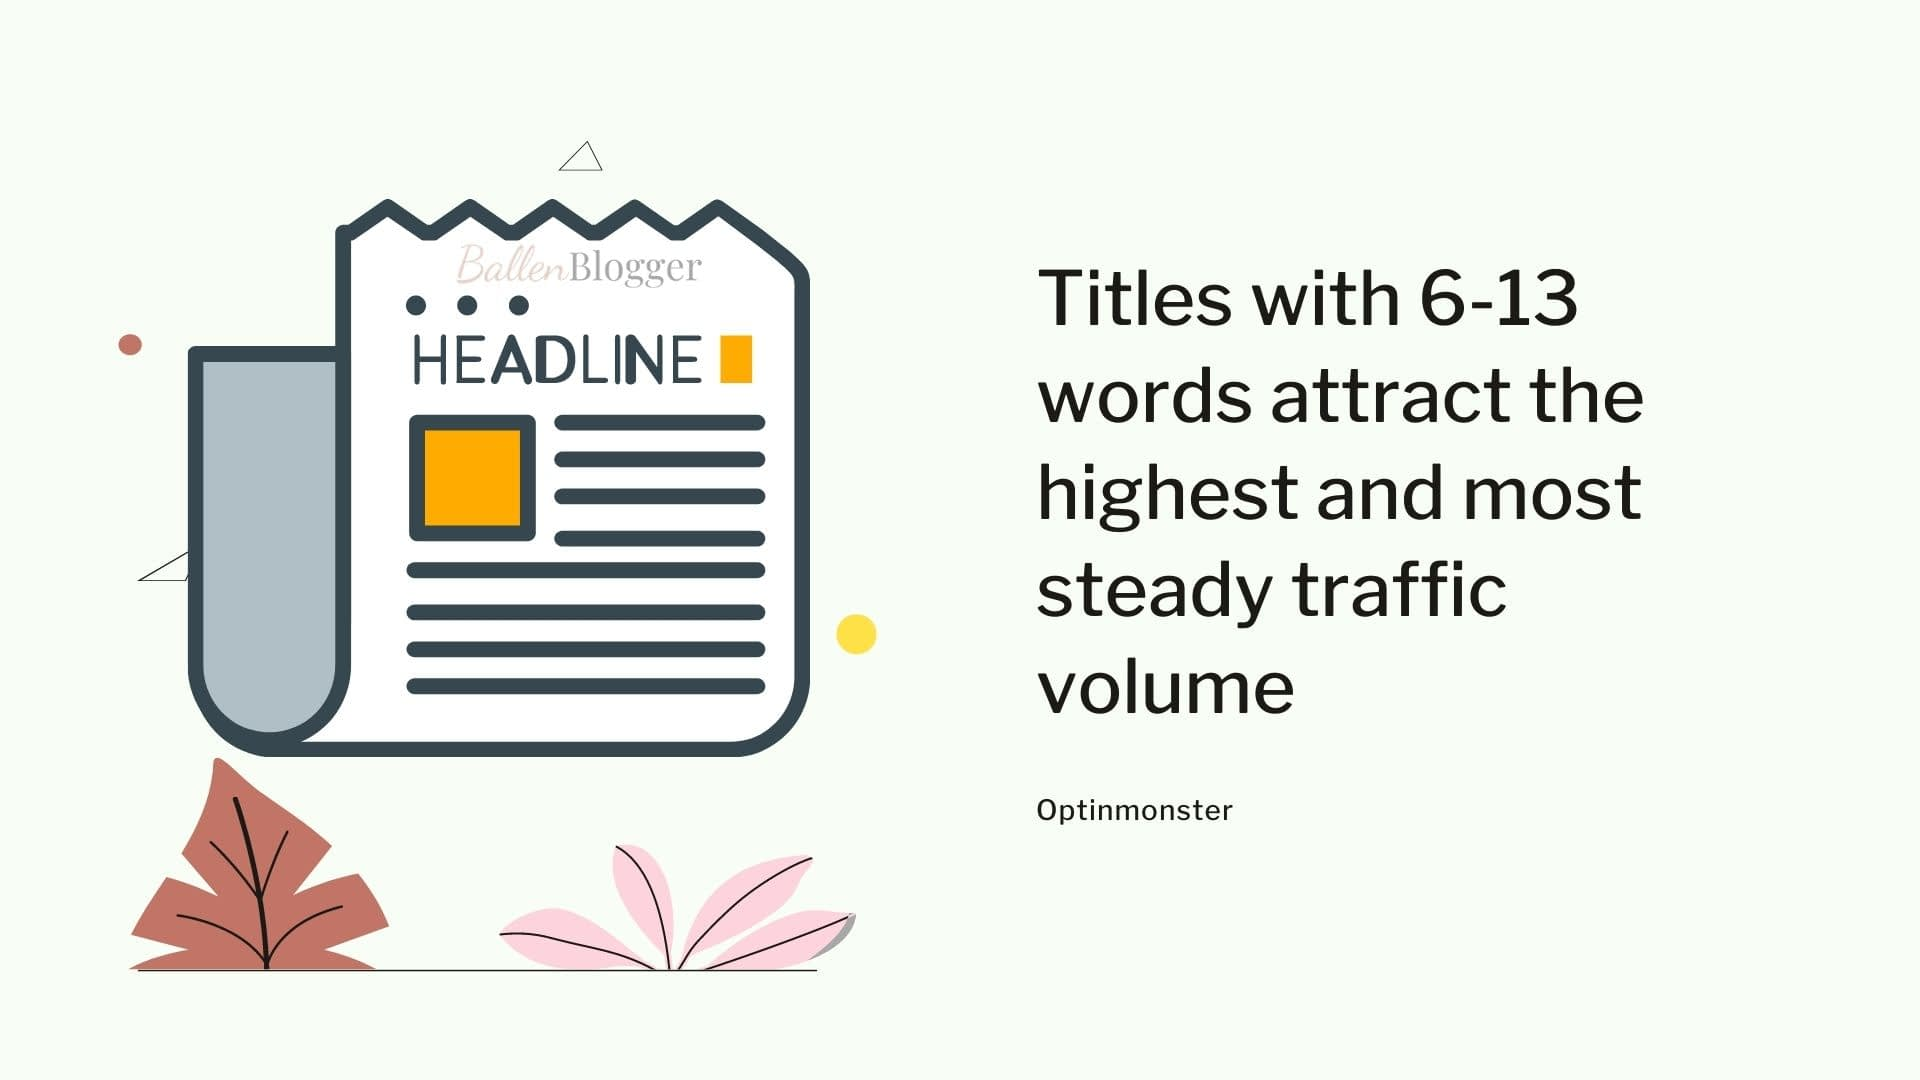 Titles with 6-13 words attract the highest and most steady traffic volume